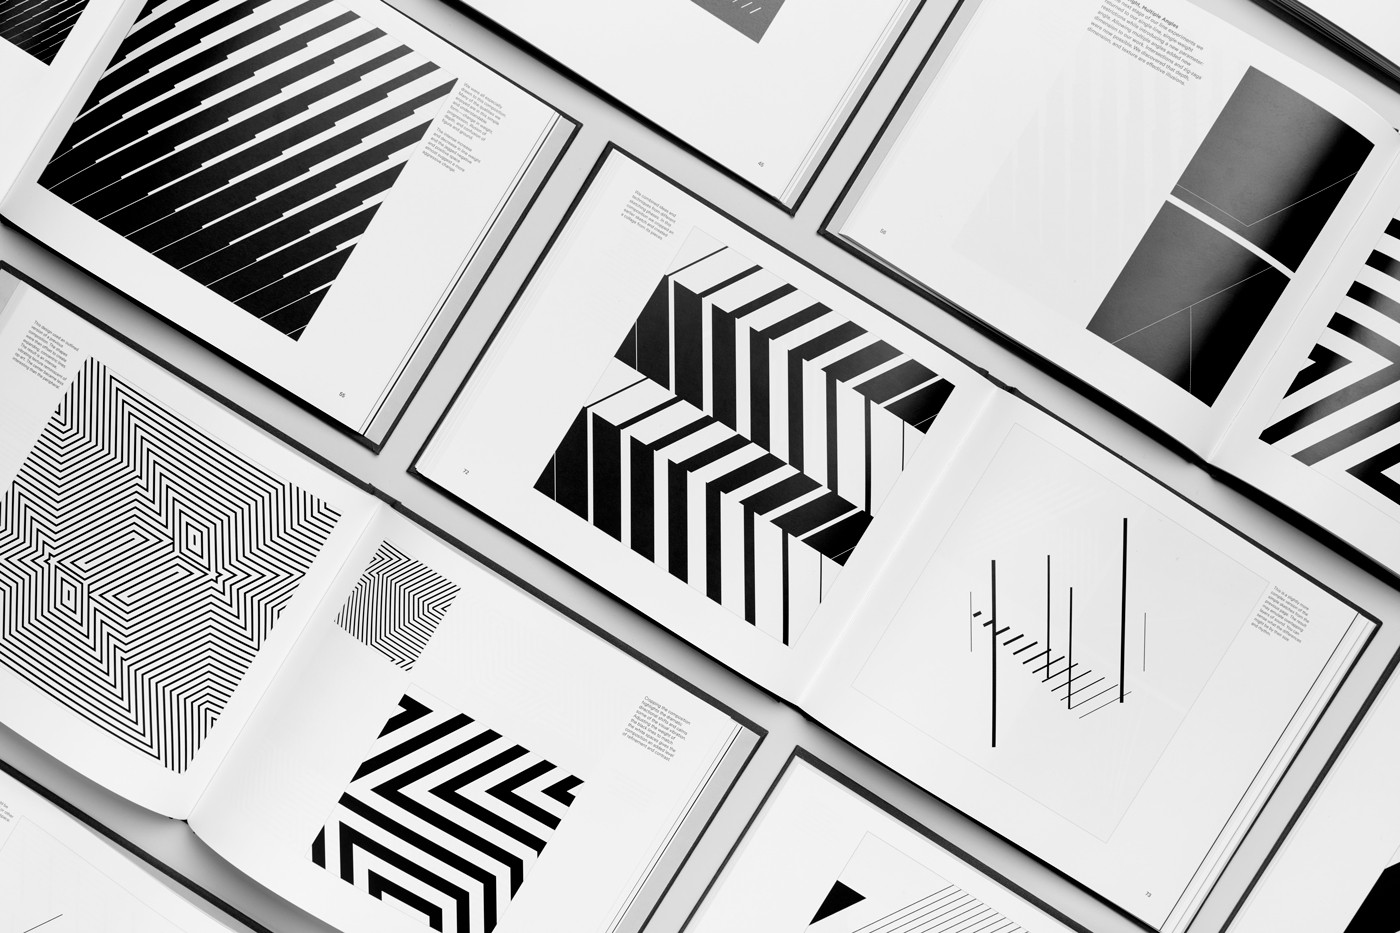 Line And Shape Design : Pin by milkphotographie on branding